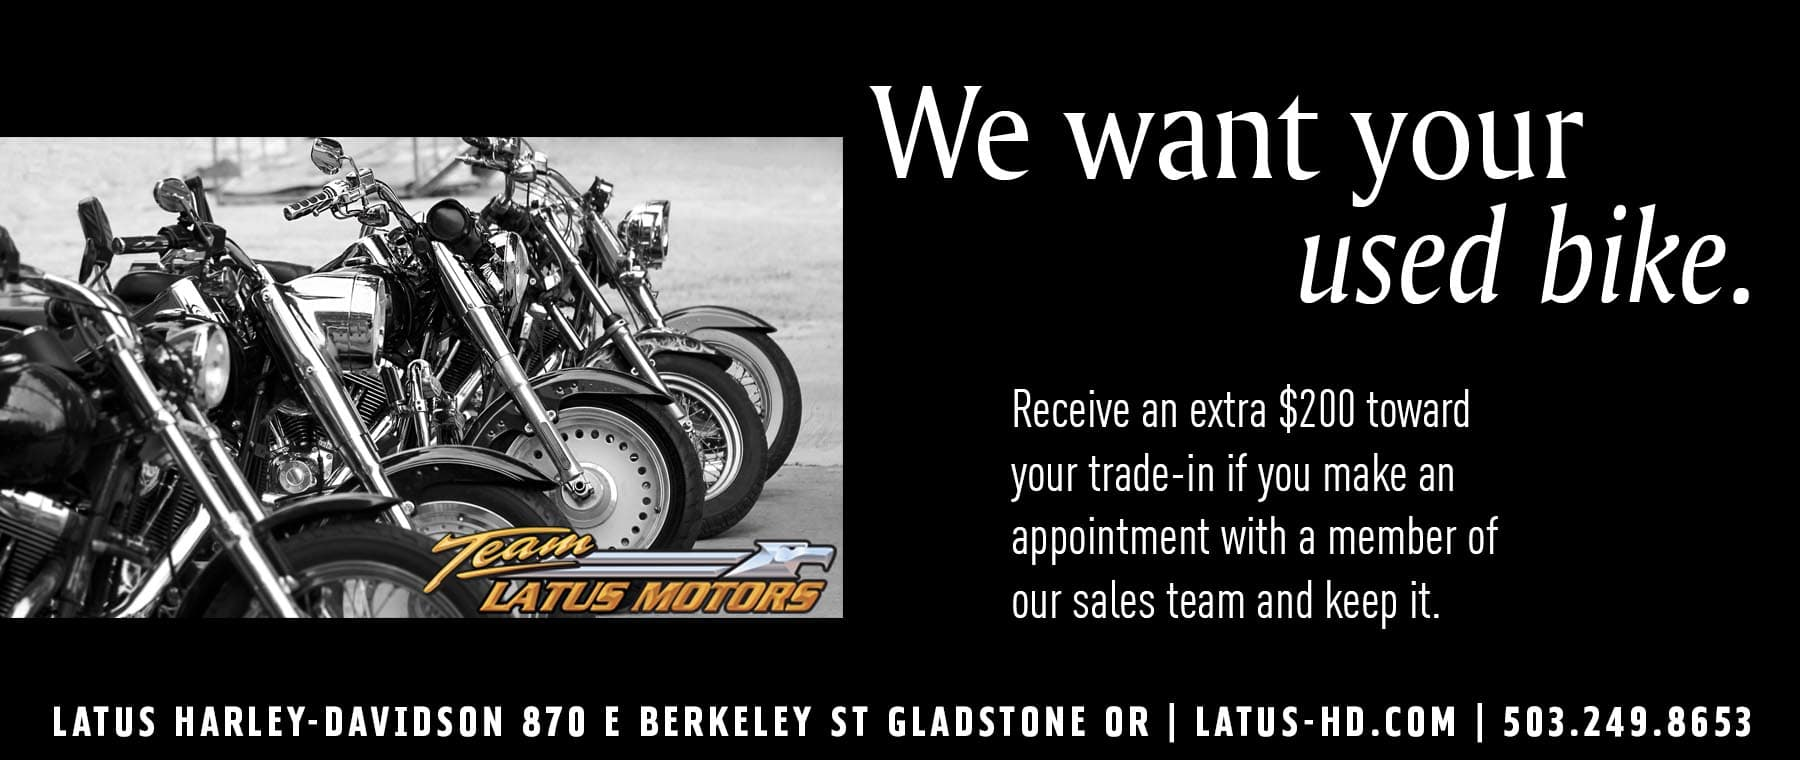 We want your used bikes.